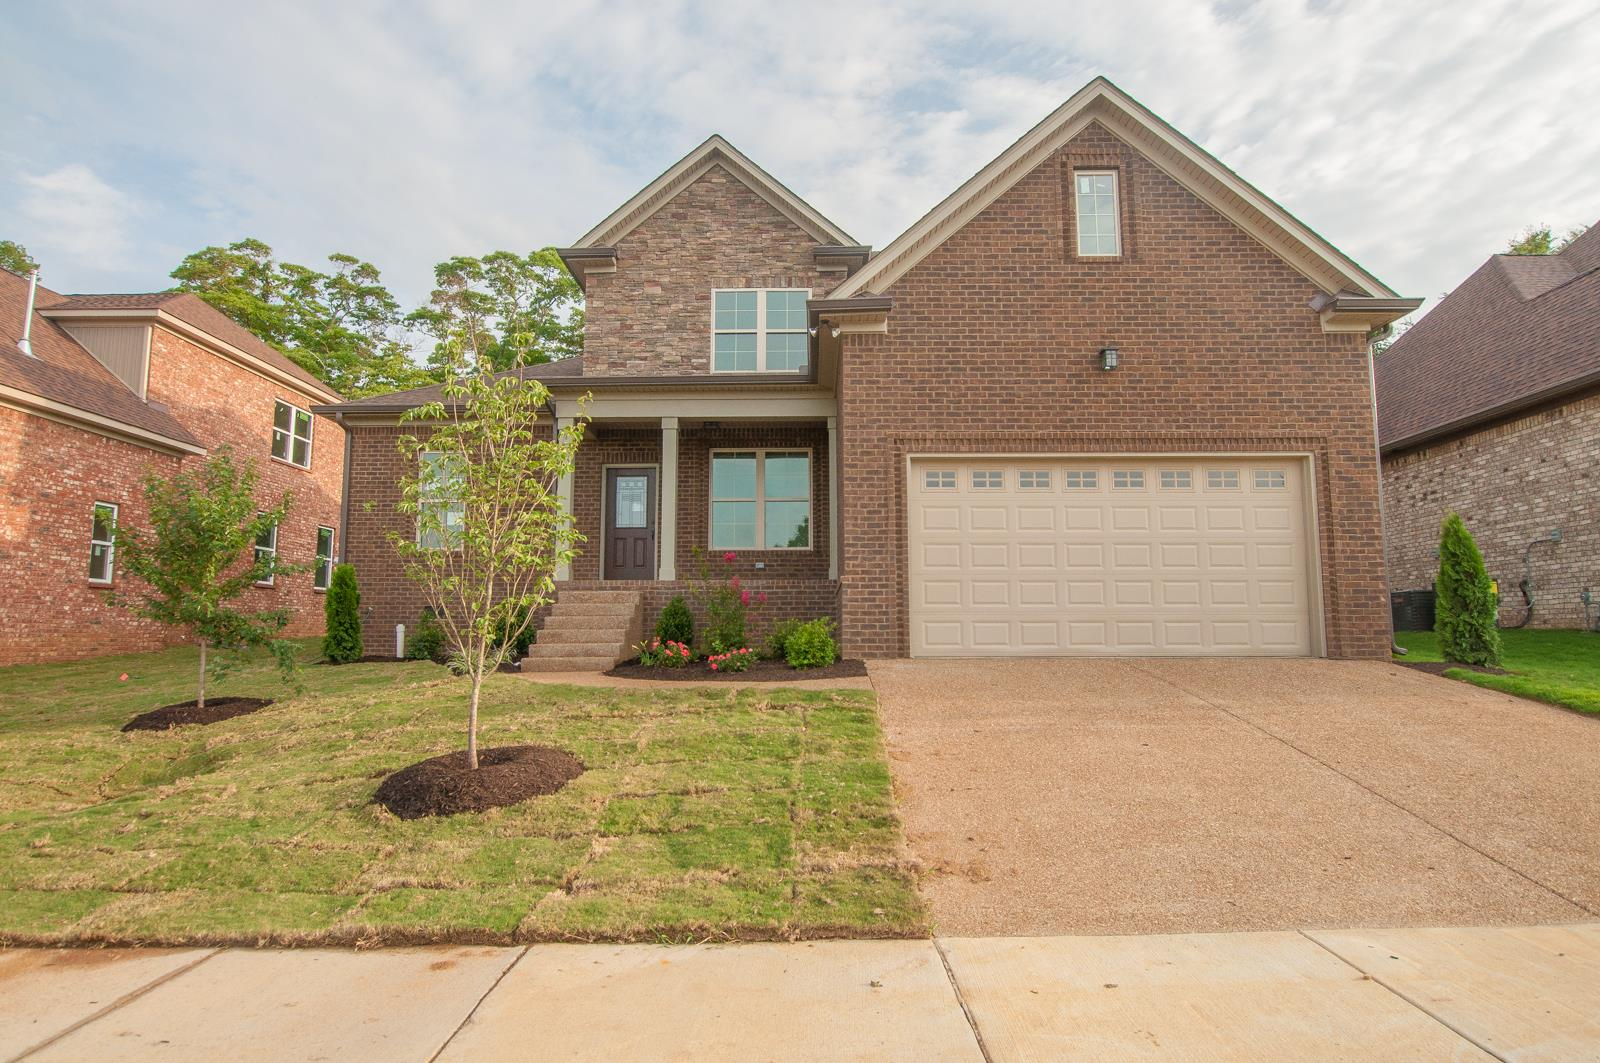 7121 SILVERWOOD TRAIL 37076 - One of Hermitage Homes for Sale